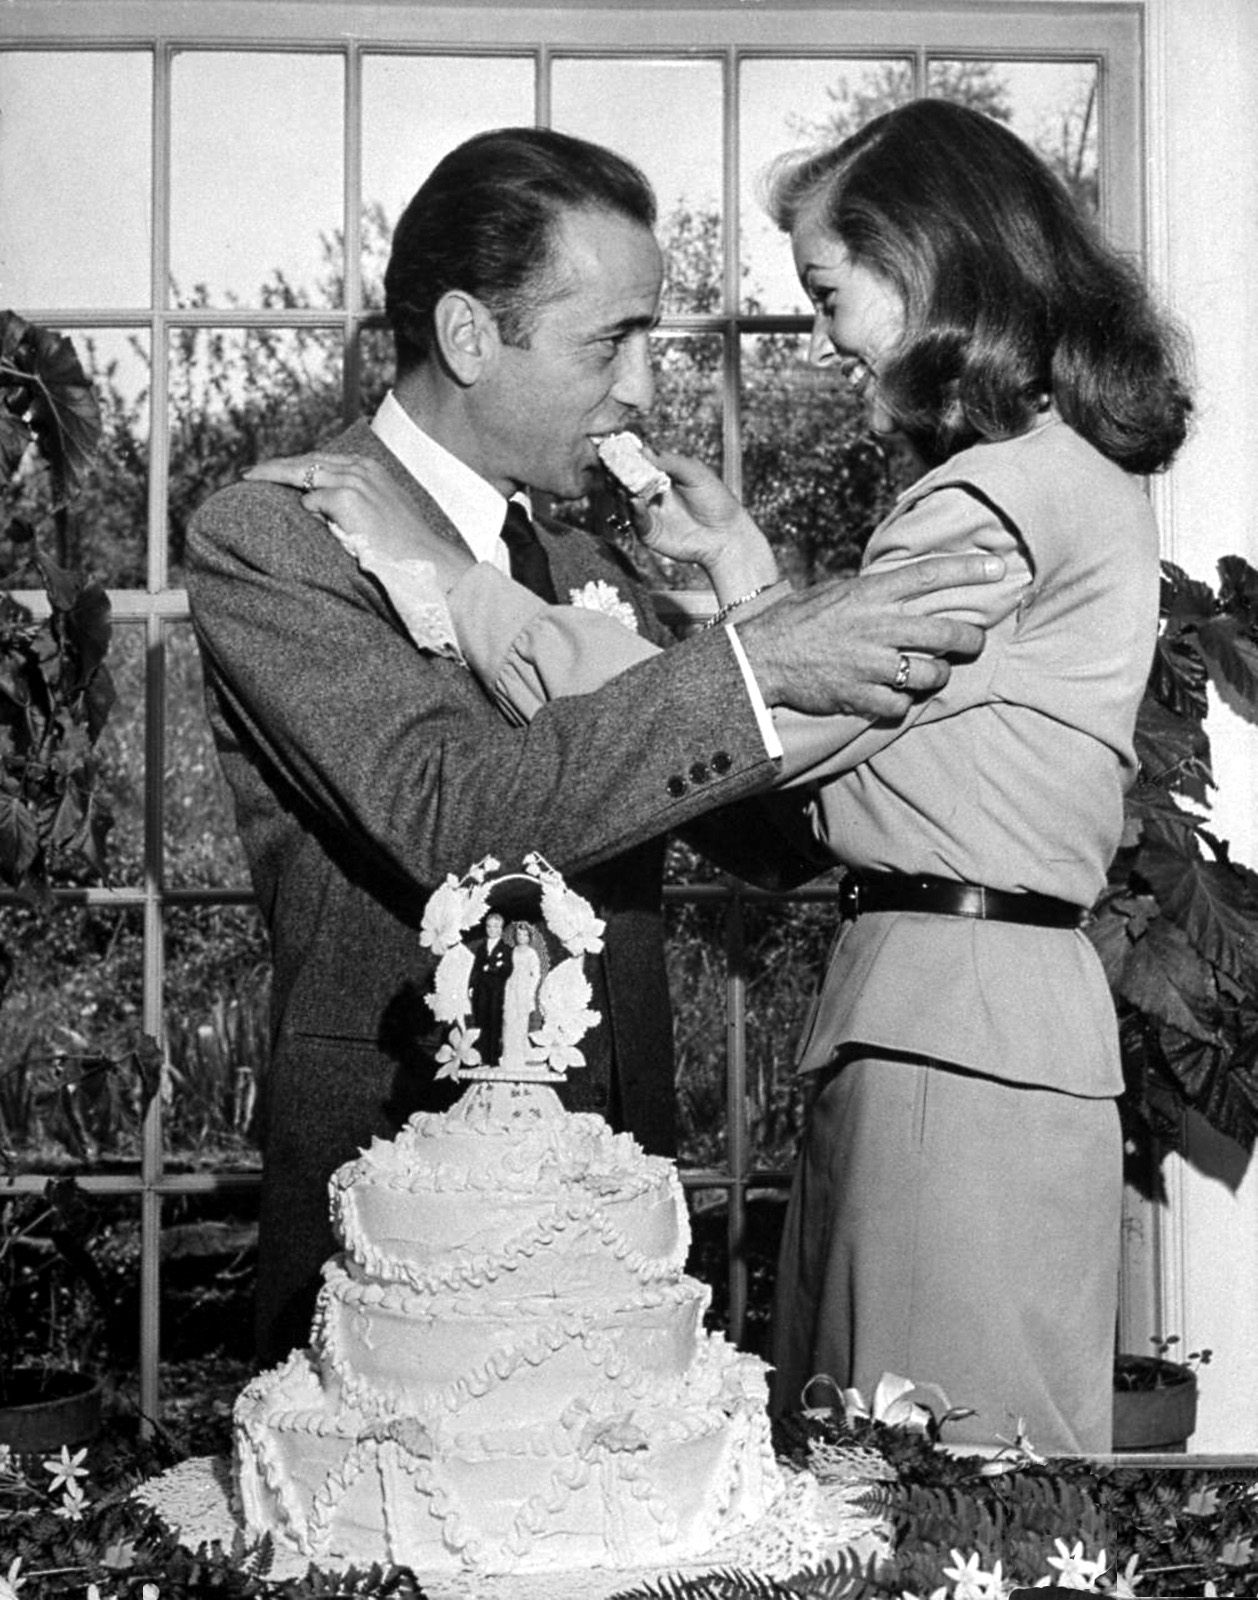 Bogie Amp Bacall Humphrey Bogart And Lauren Bacall On